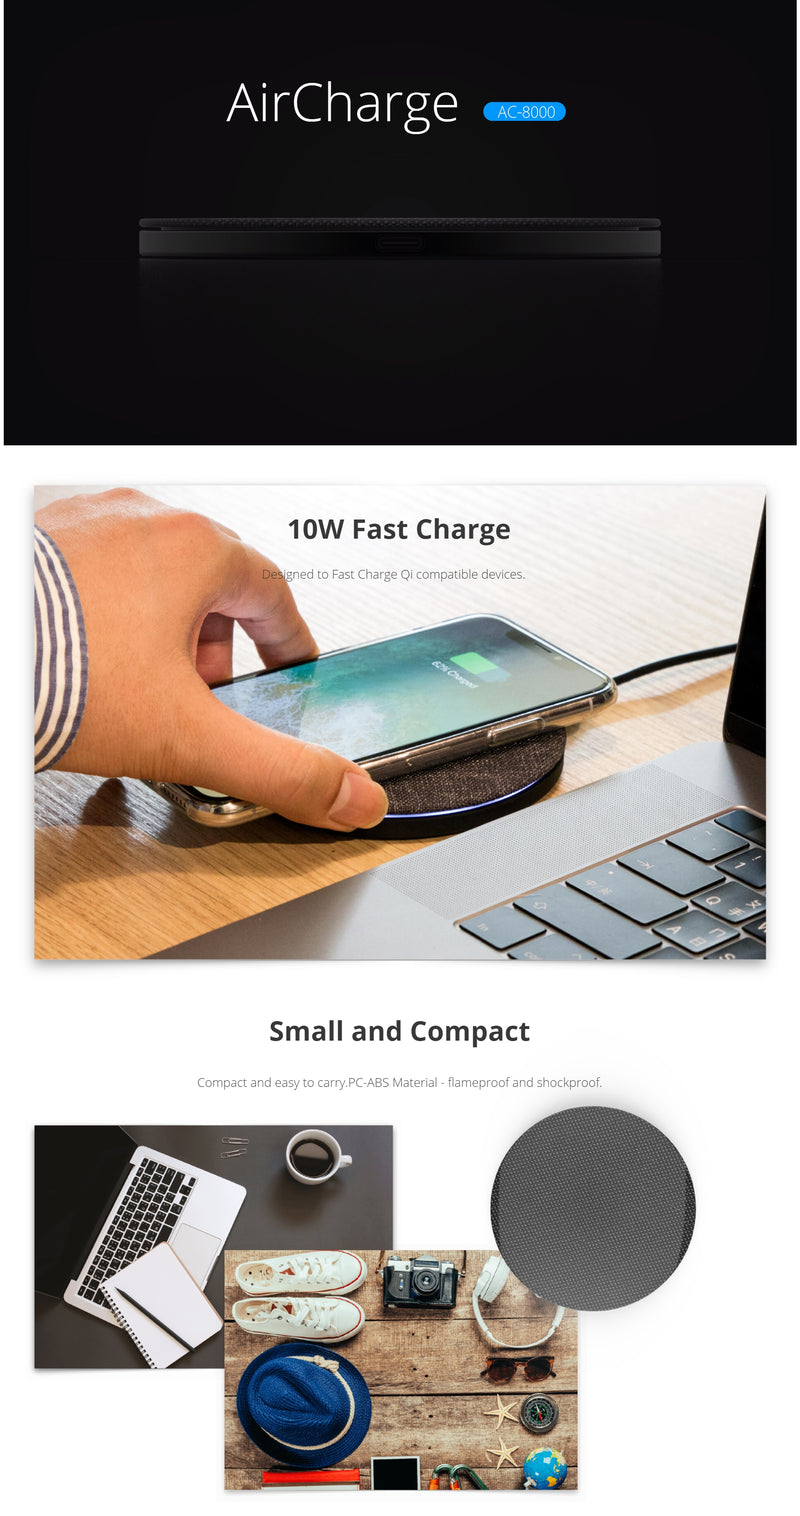 Photofast AirCharge Qi Compatible 10W Fast Charge (SKU:AC8000)